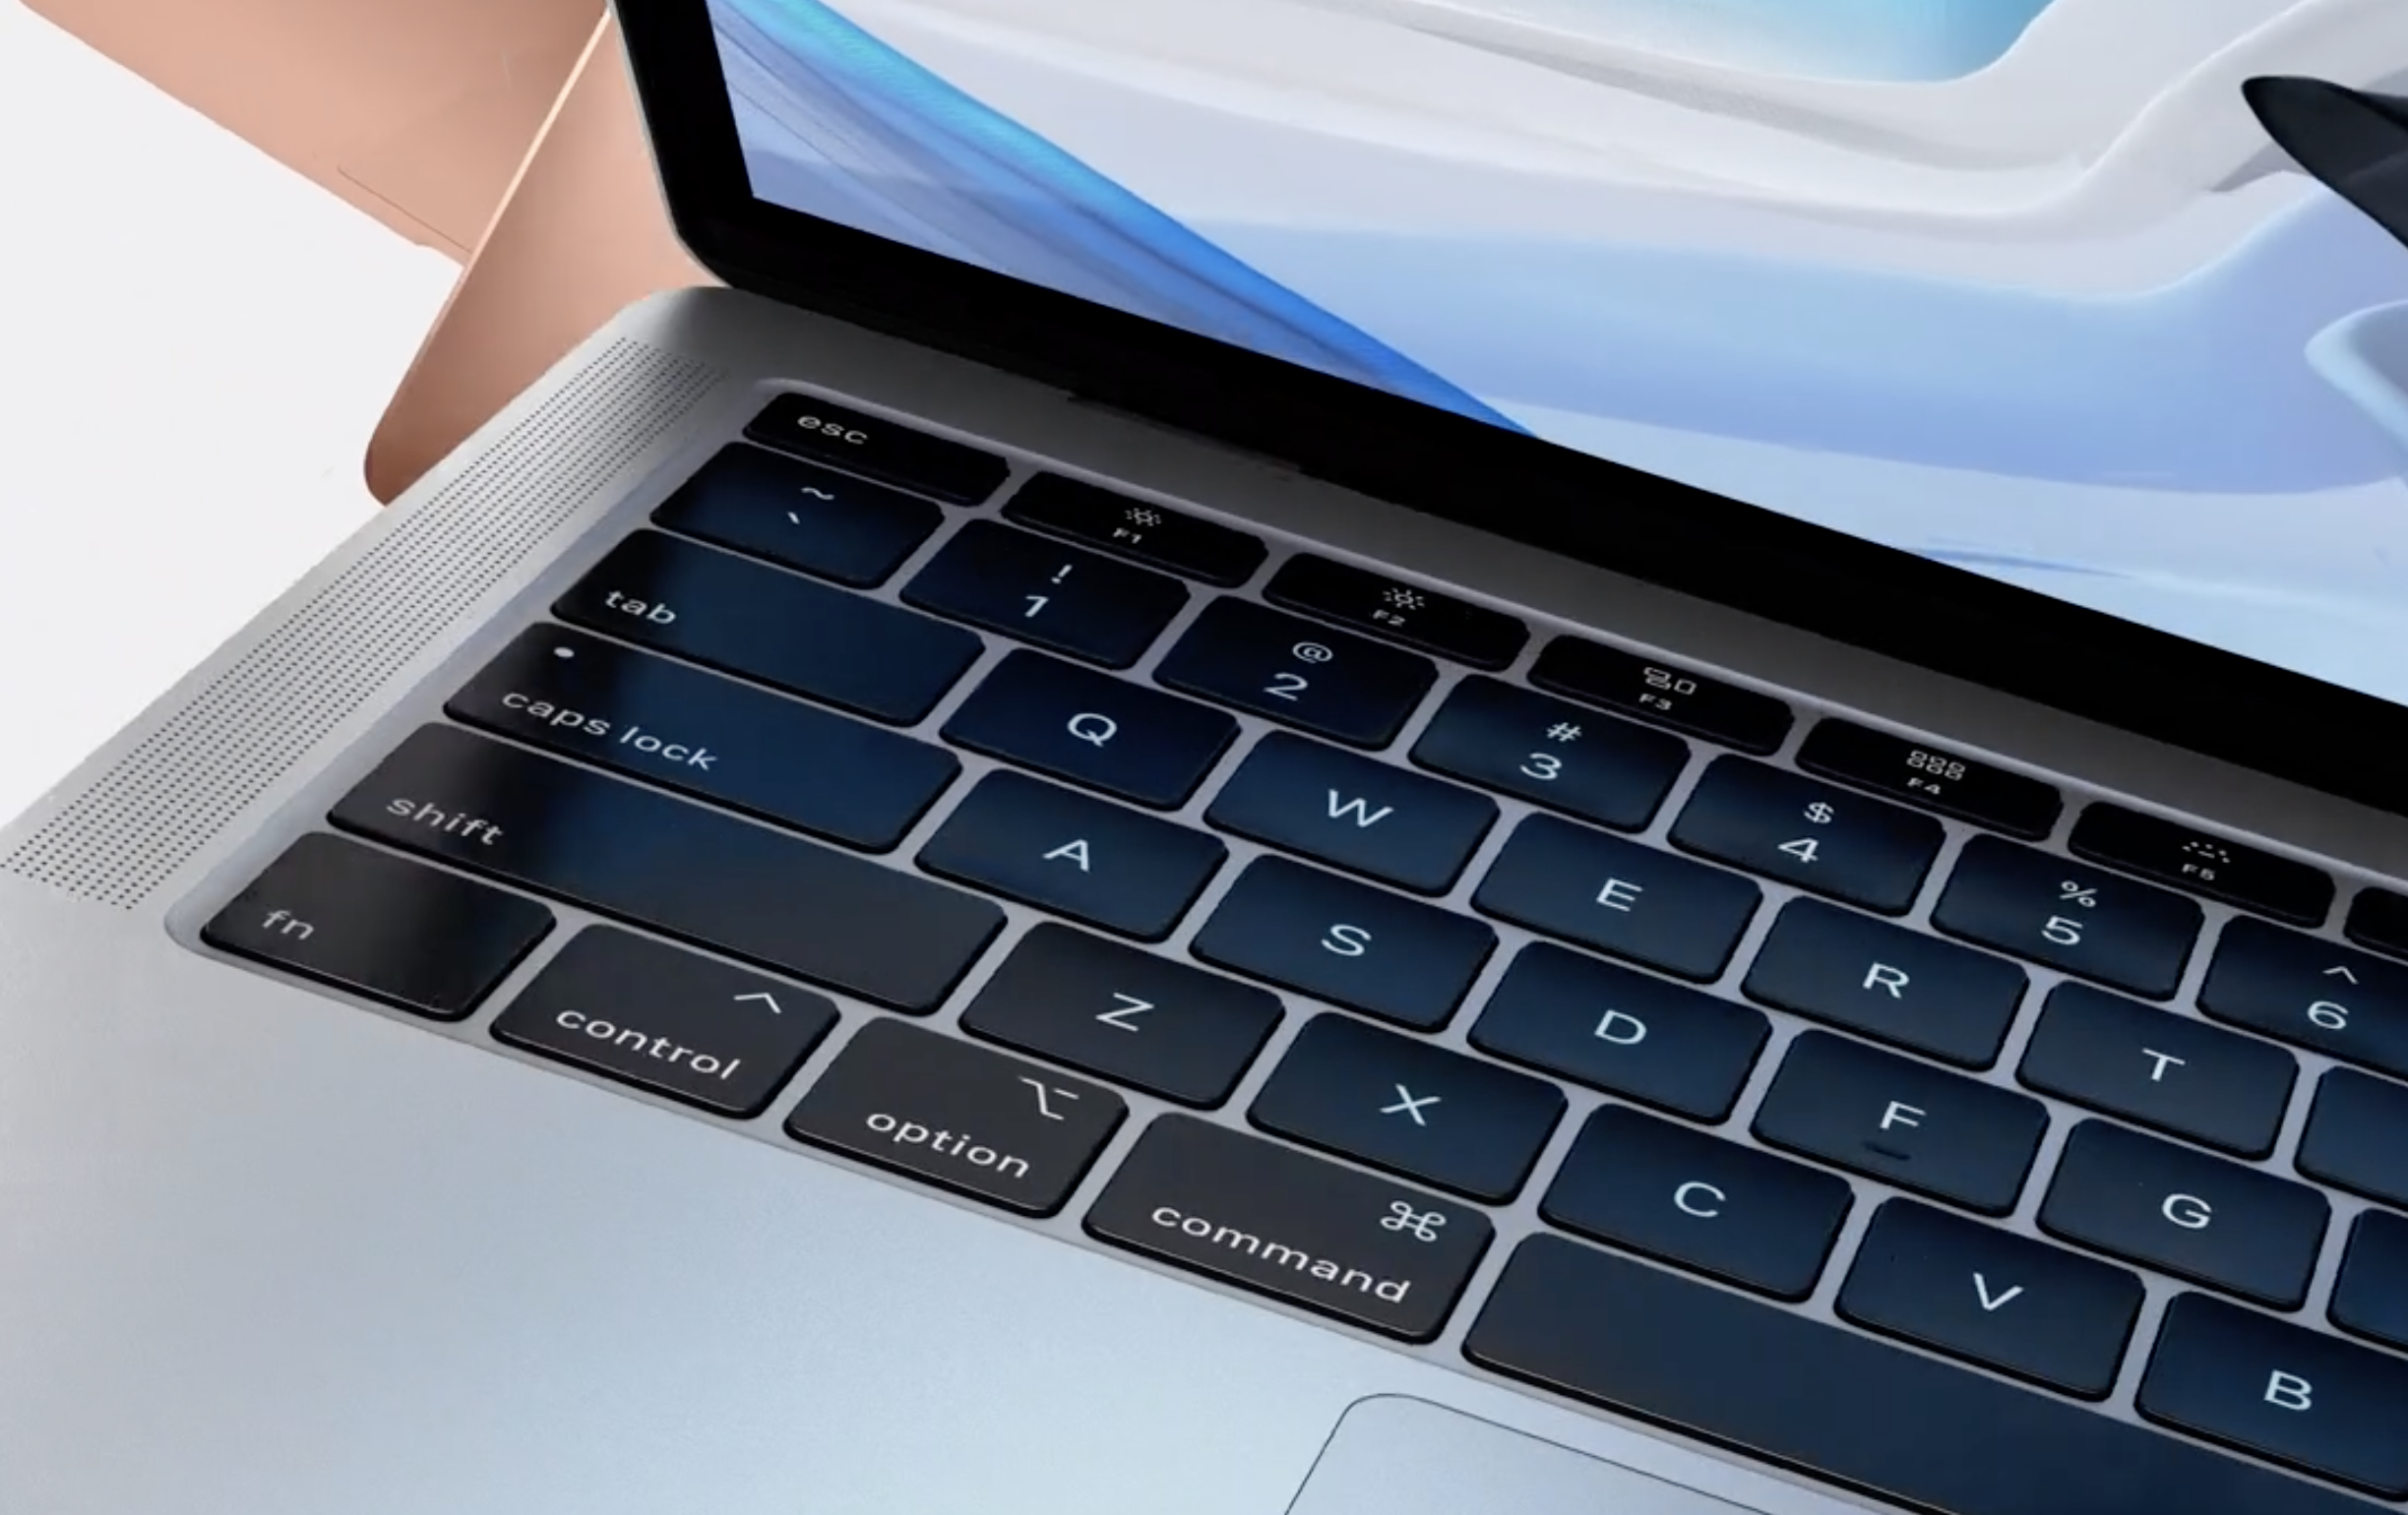 MacBook Air z ekranem retina